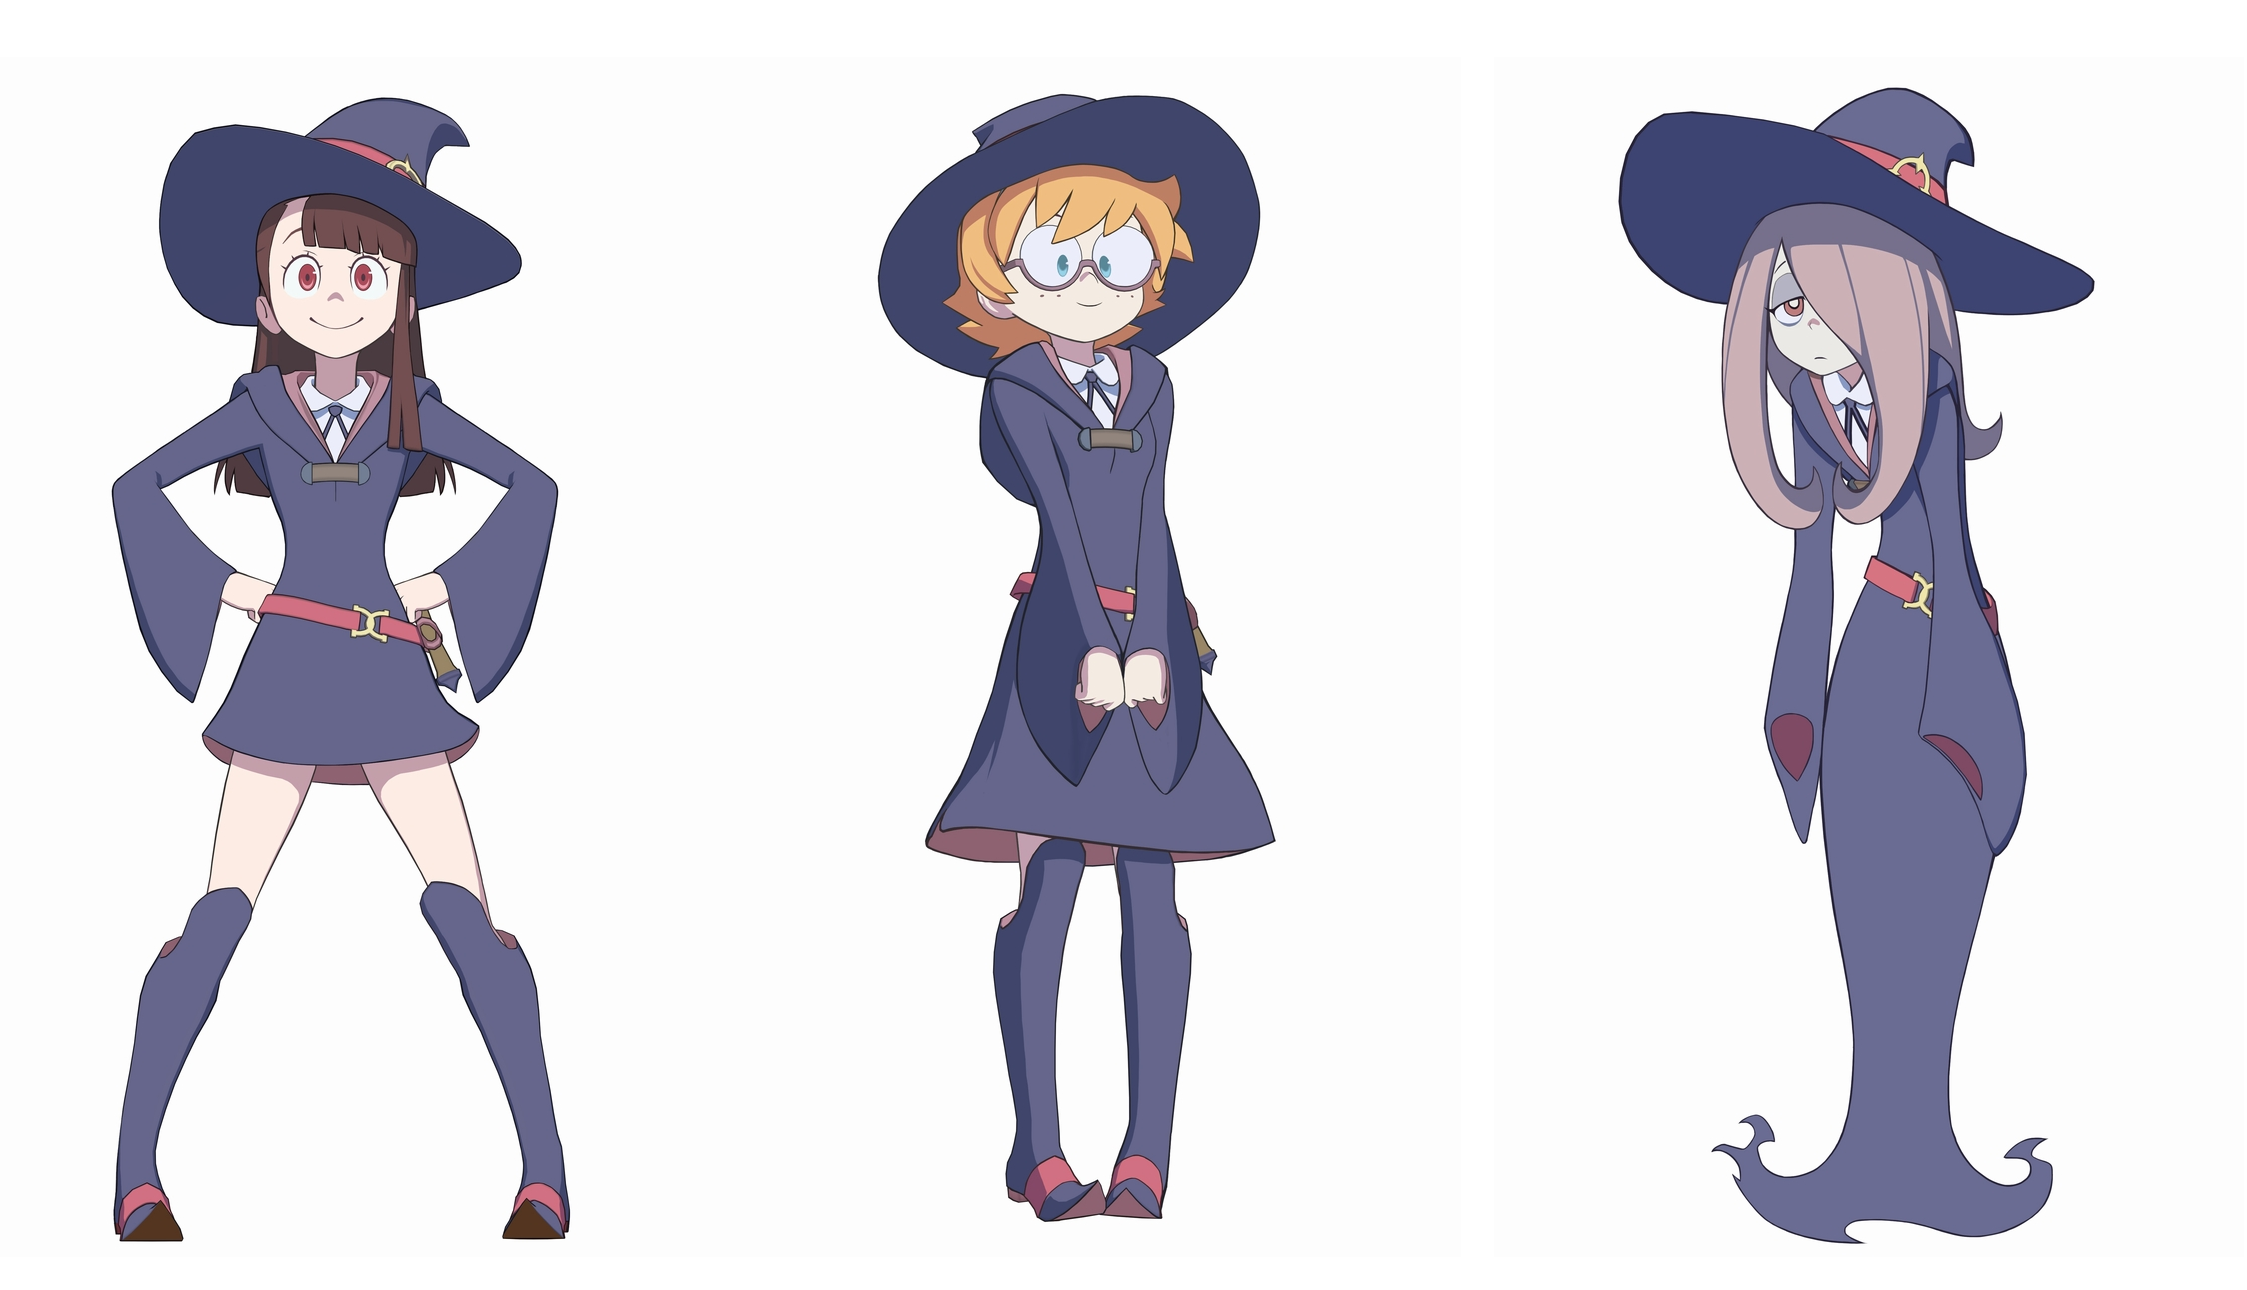 The Gang's Characters Models from LWA: Chamber of Time.